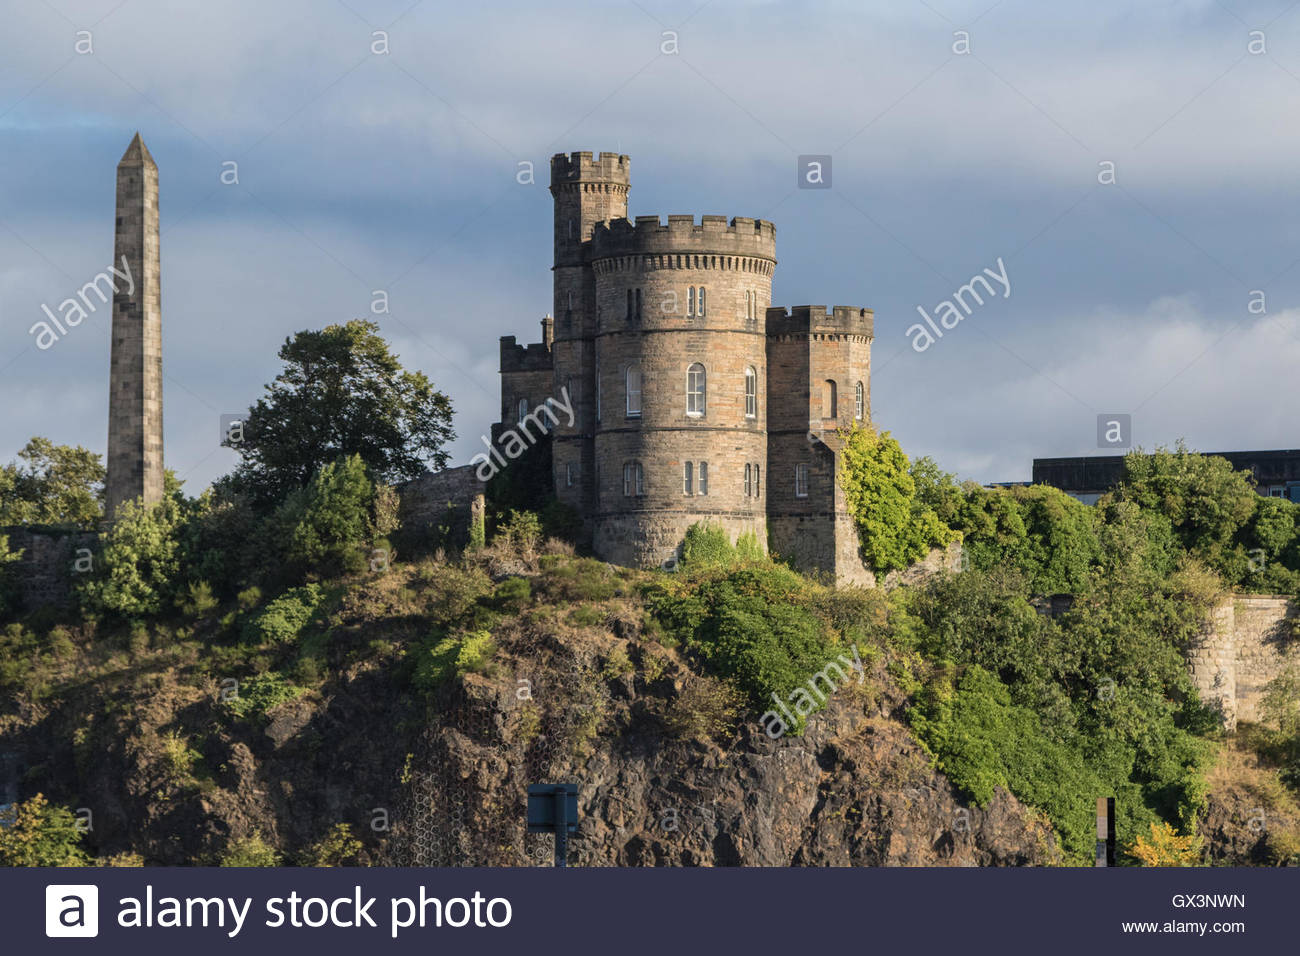 The Governor's House and the Political Martyrs' Monument on Calton Hill, Edinburgh Stock Photo